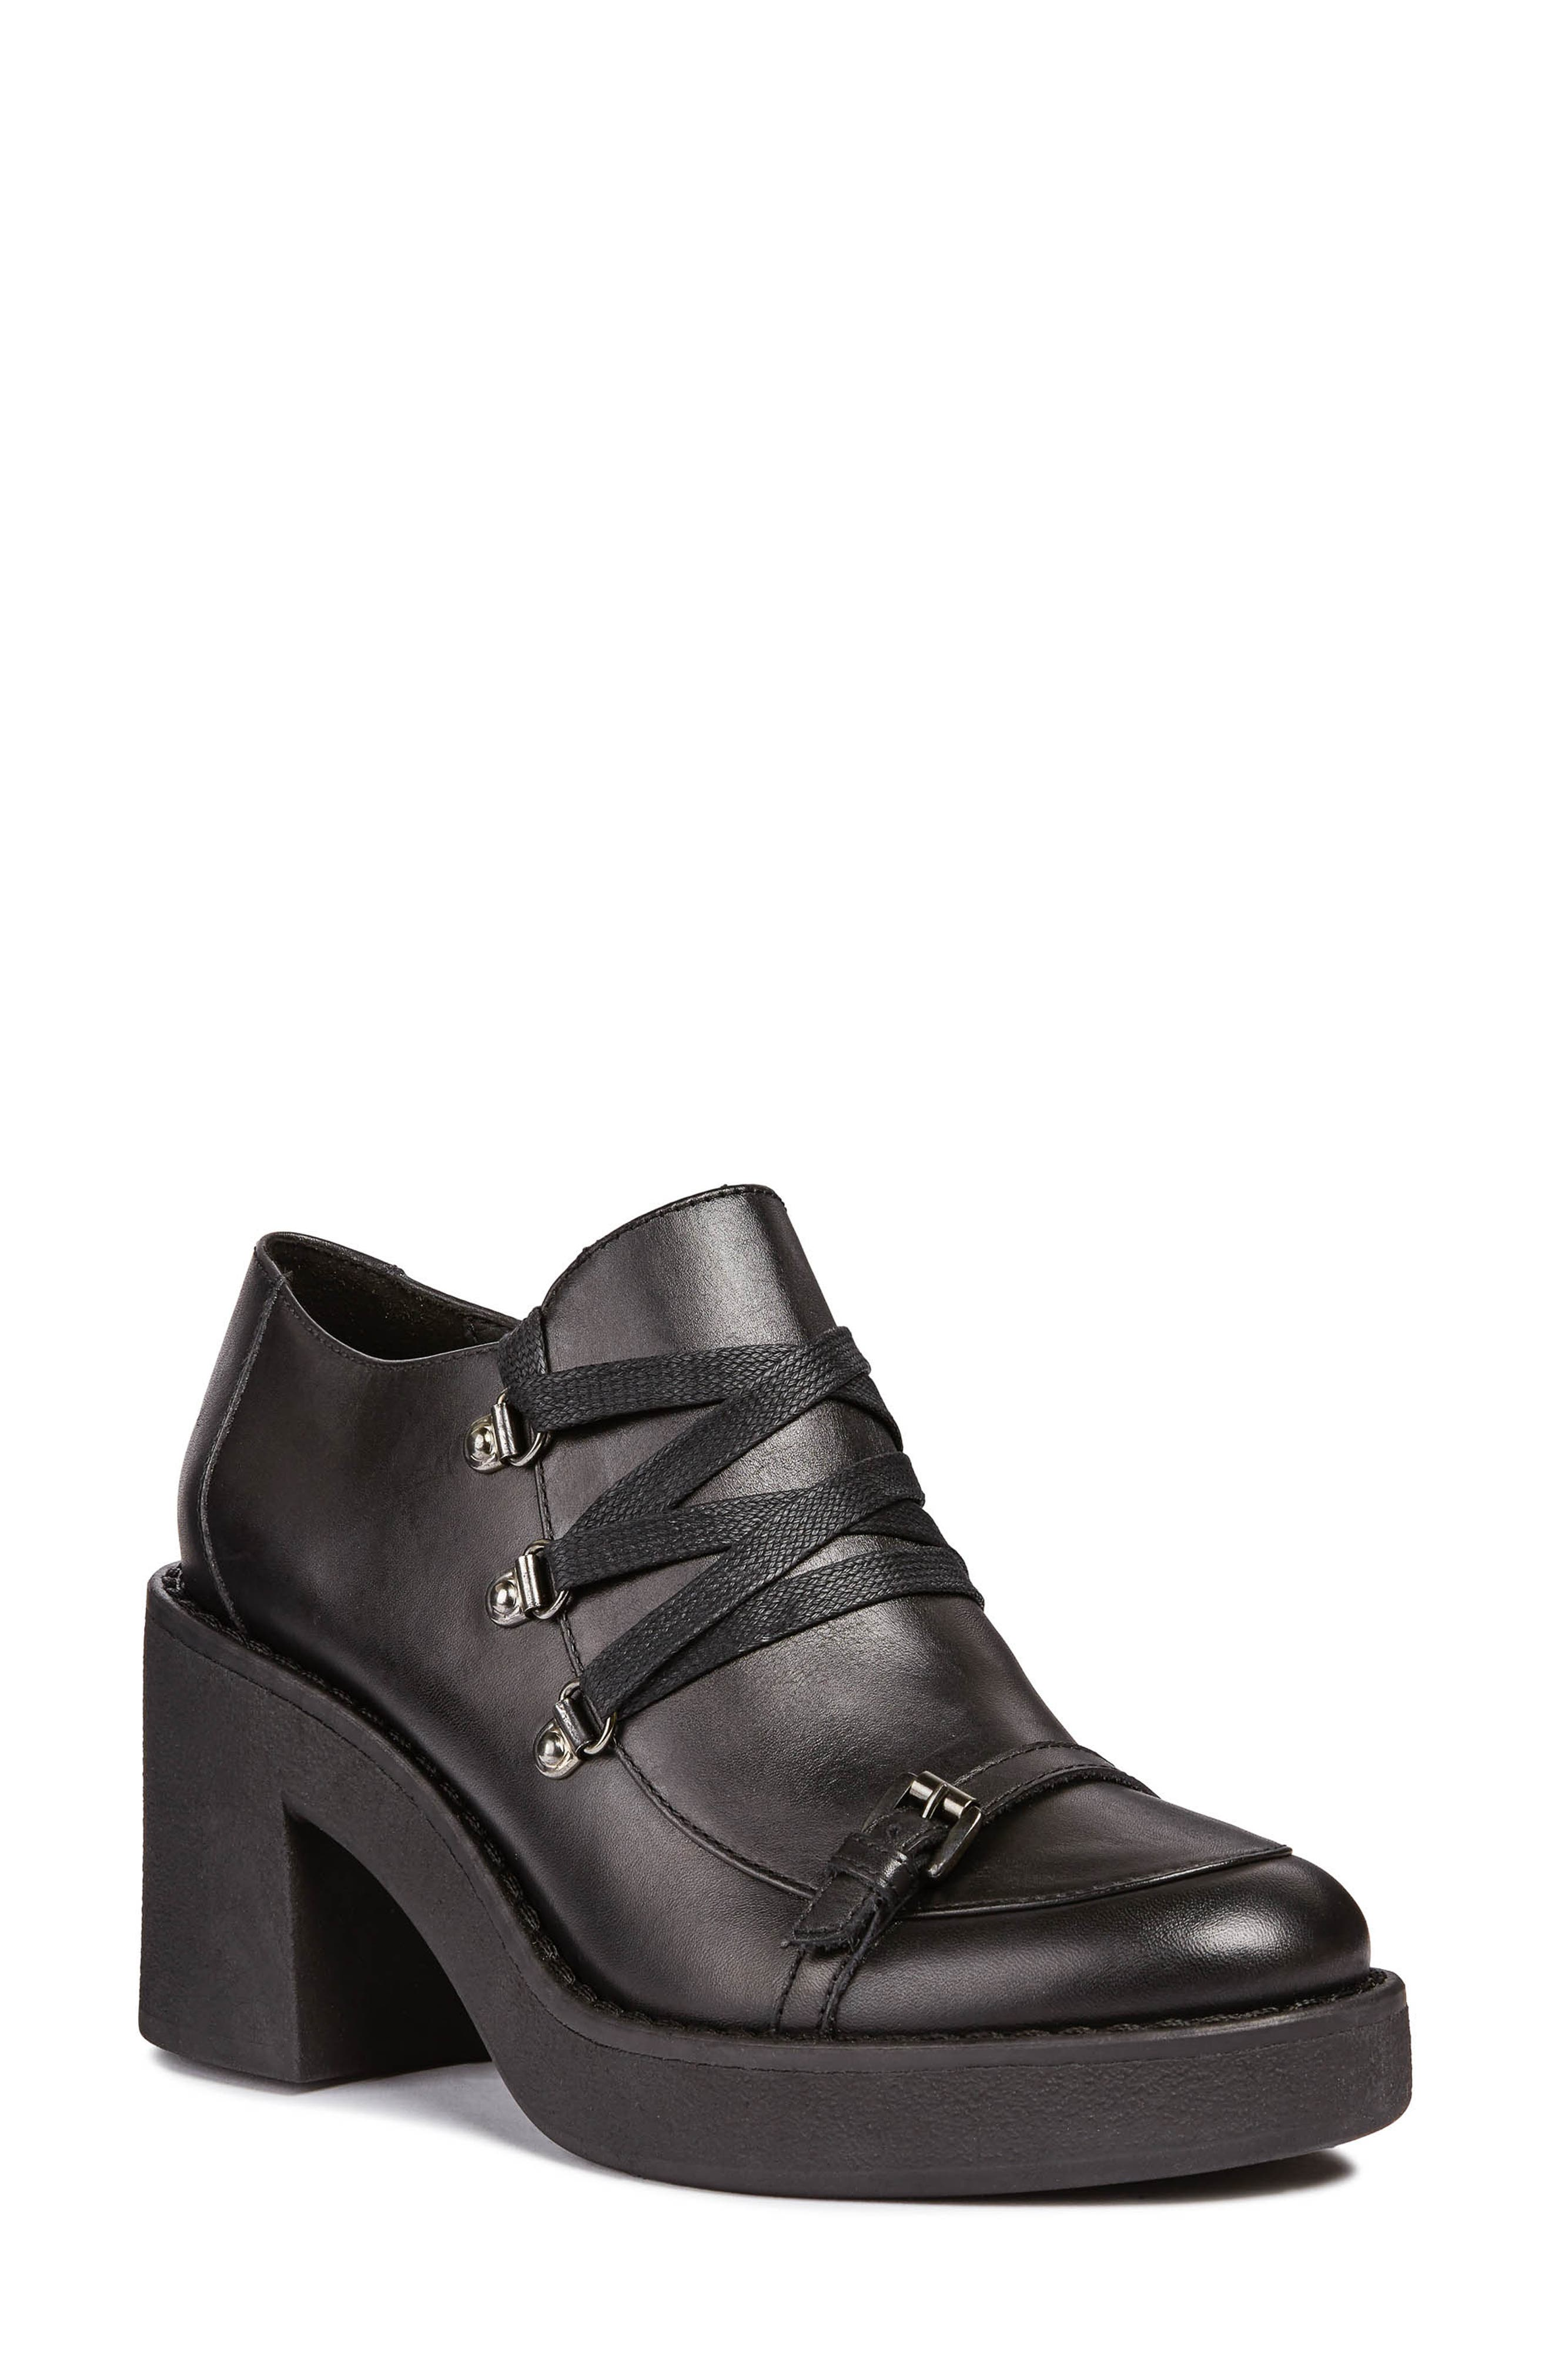 Adrya Bootie,                             Main thumbnail 1, color,                             BLACK LEATHER